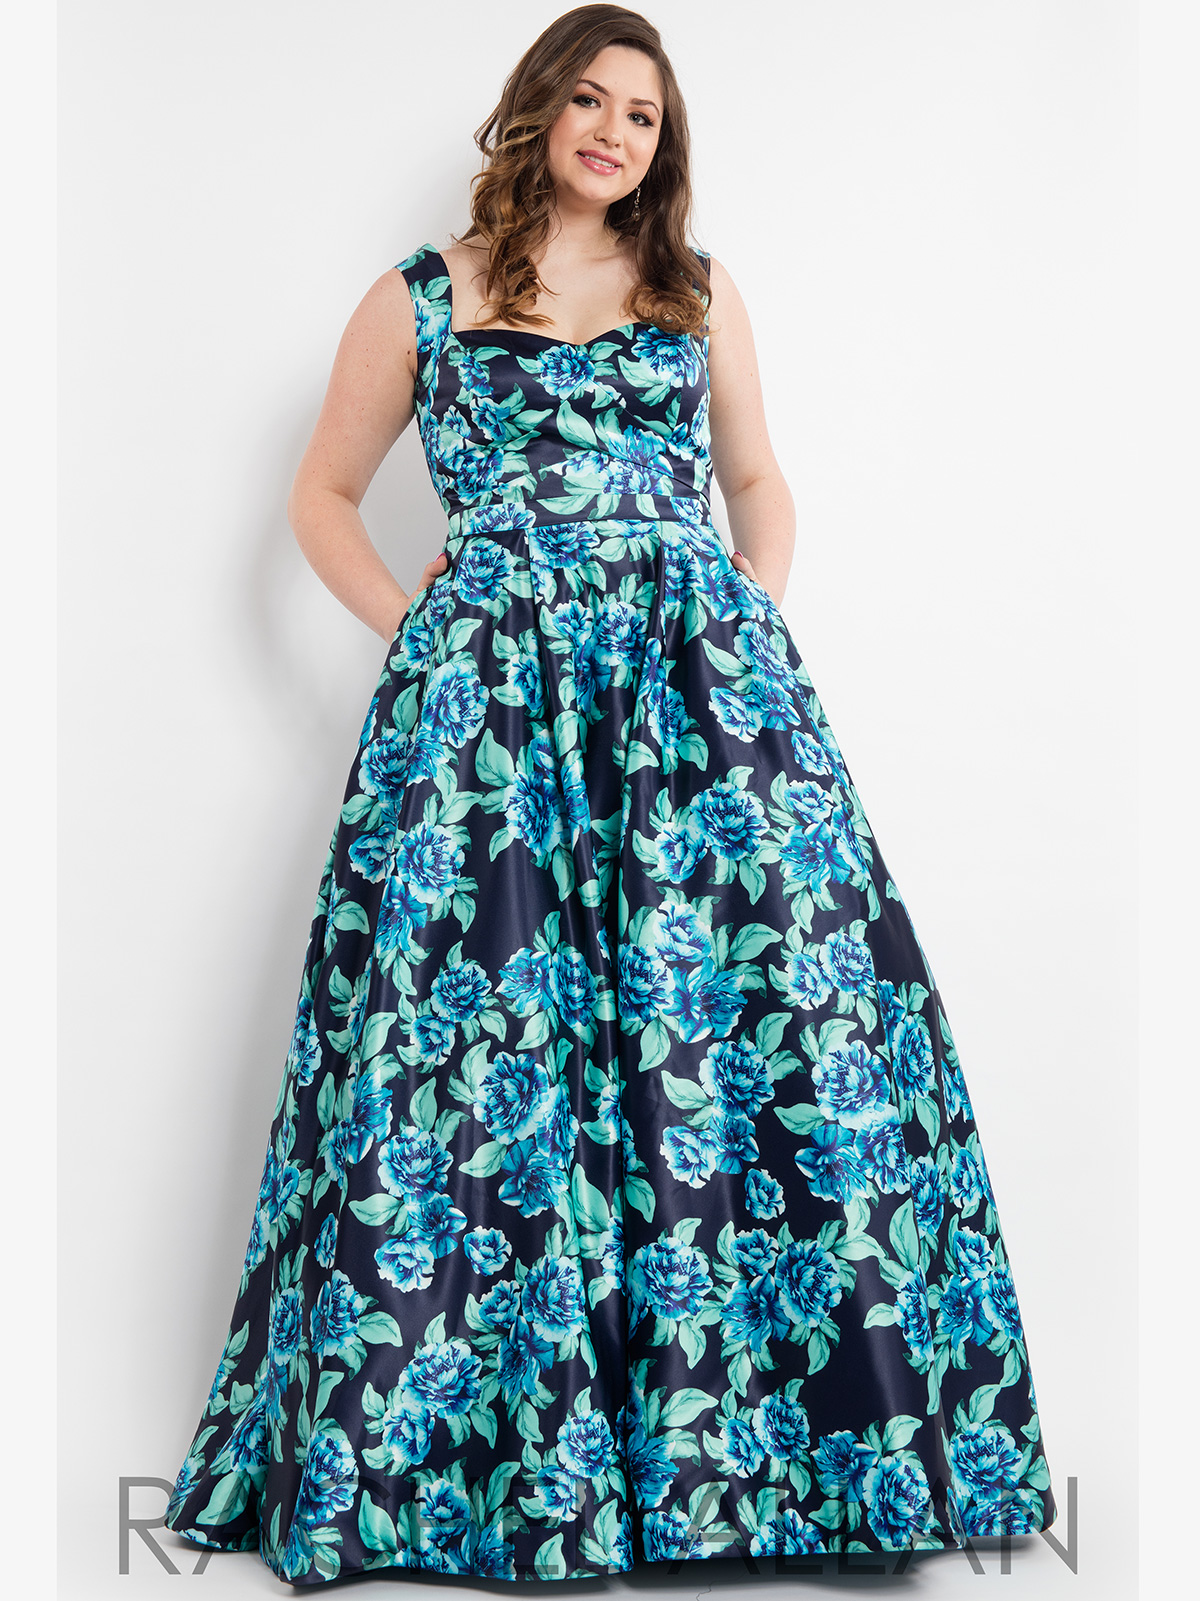 Plus Size Prom Dresses Teal – fashion dresses